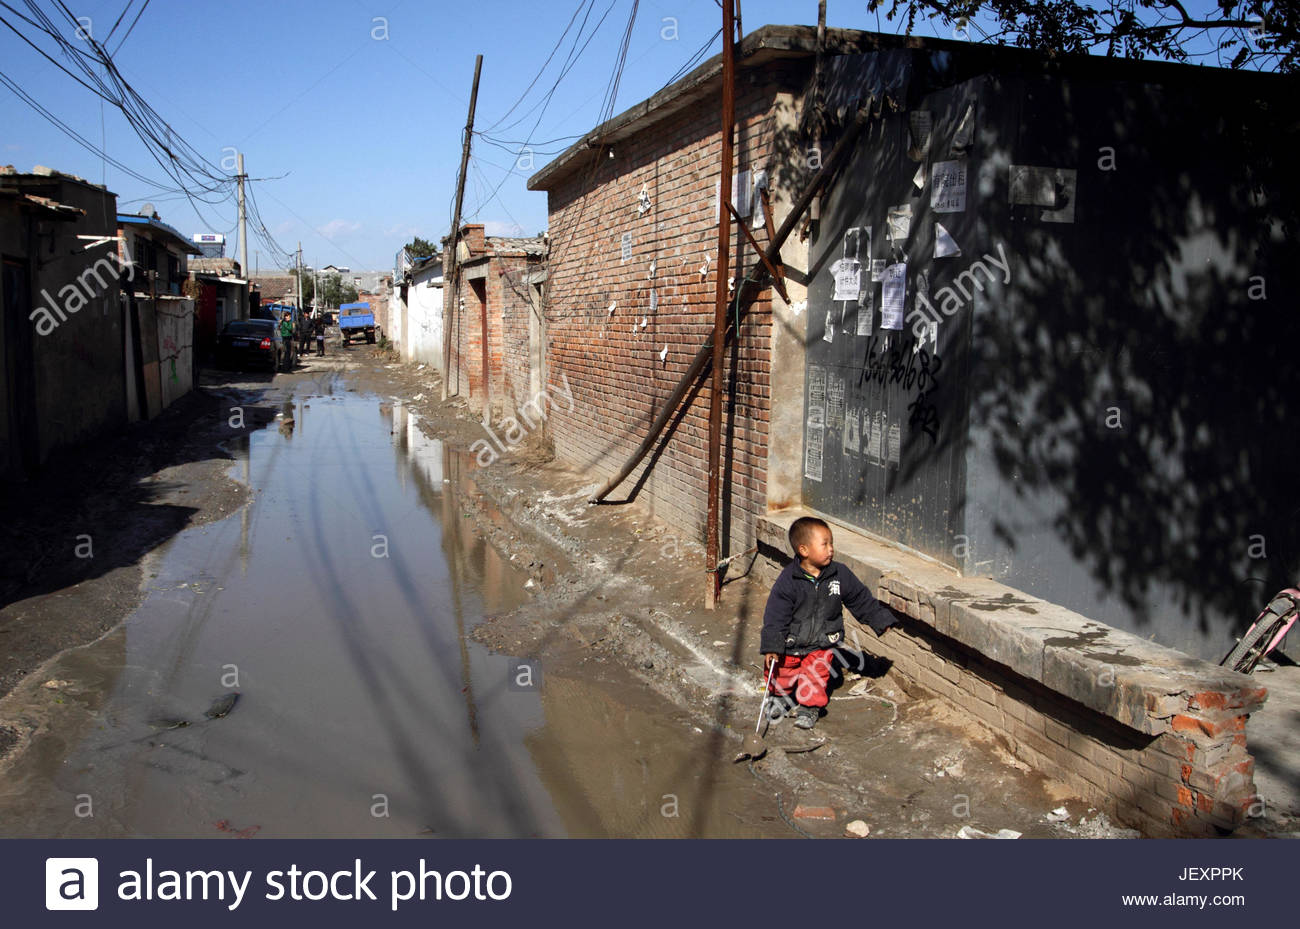 A child playing on a small road in a migrant worker village on the outskirts of Beijing. - Stock Image